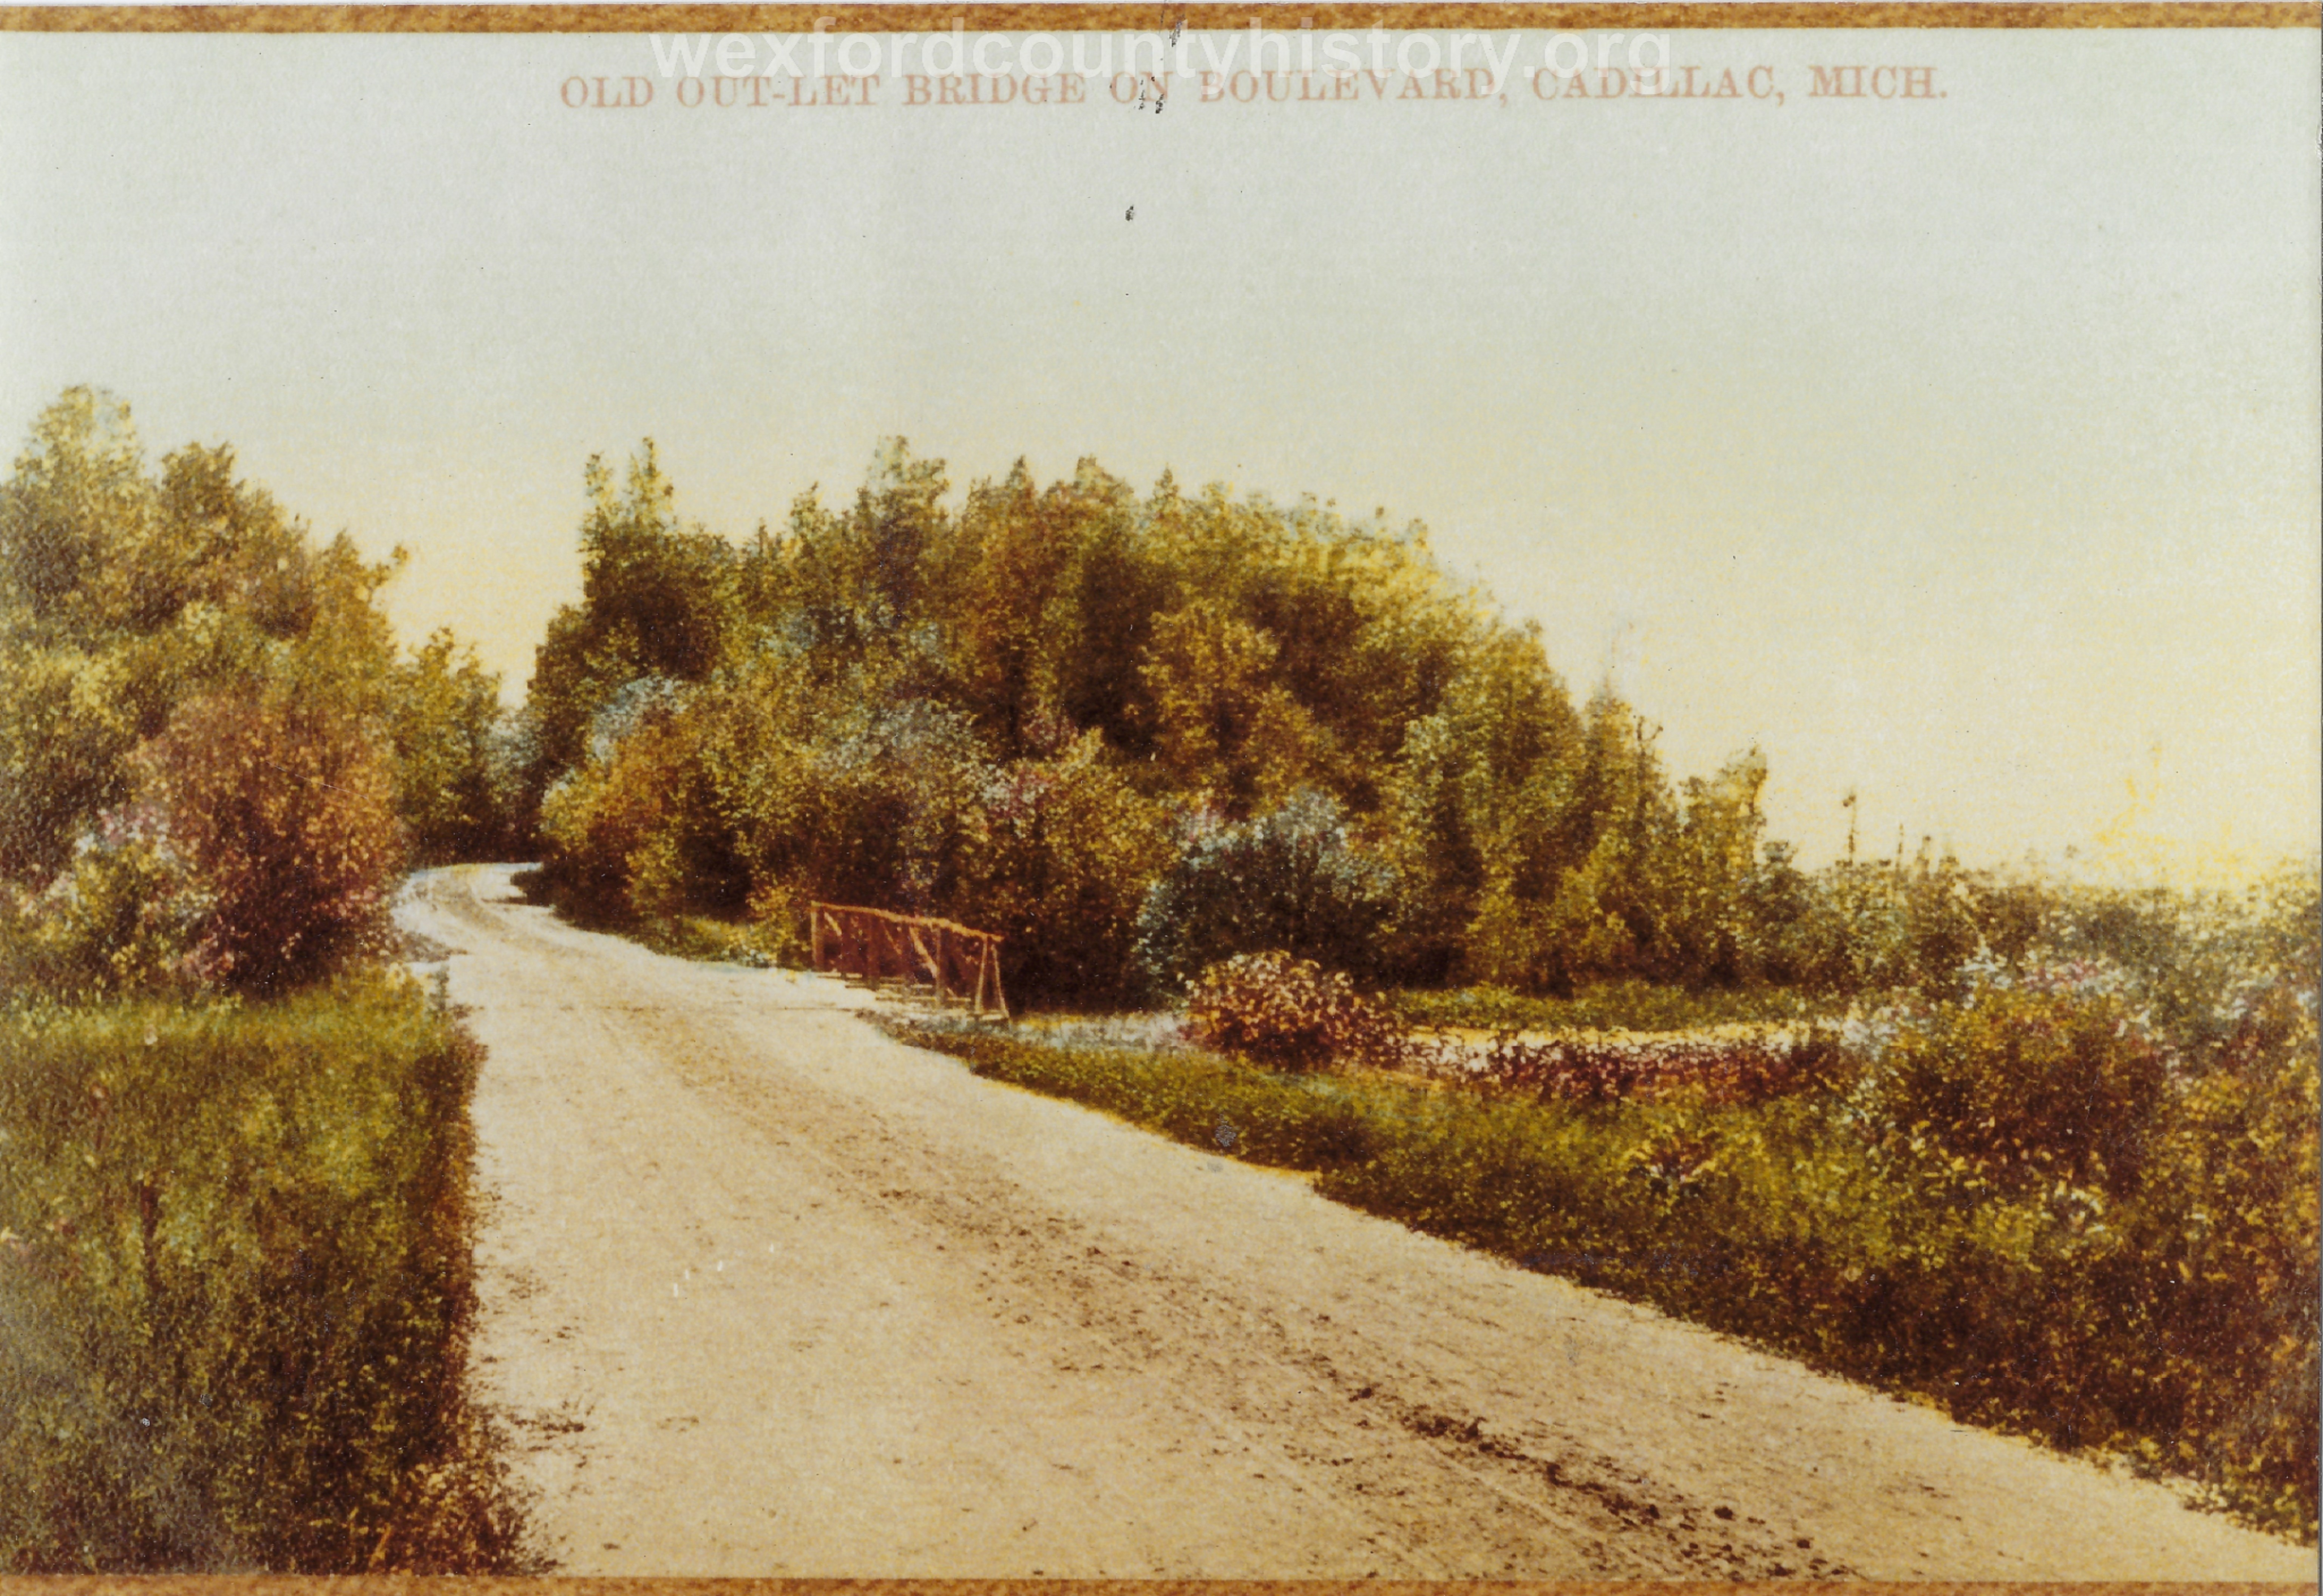 Cadillac-Recreation-Old-Outlet-Bridge-The-North-Boulevard-roadway-was-constructed-by-the-Mitchell-family.-This-1907-or-earlier.-photo-was-taken-approaching-the-Black-Creek-5